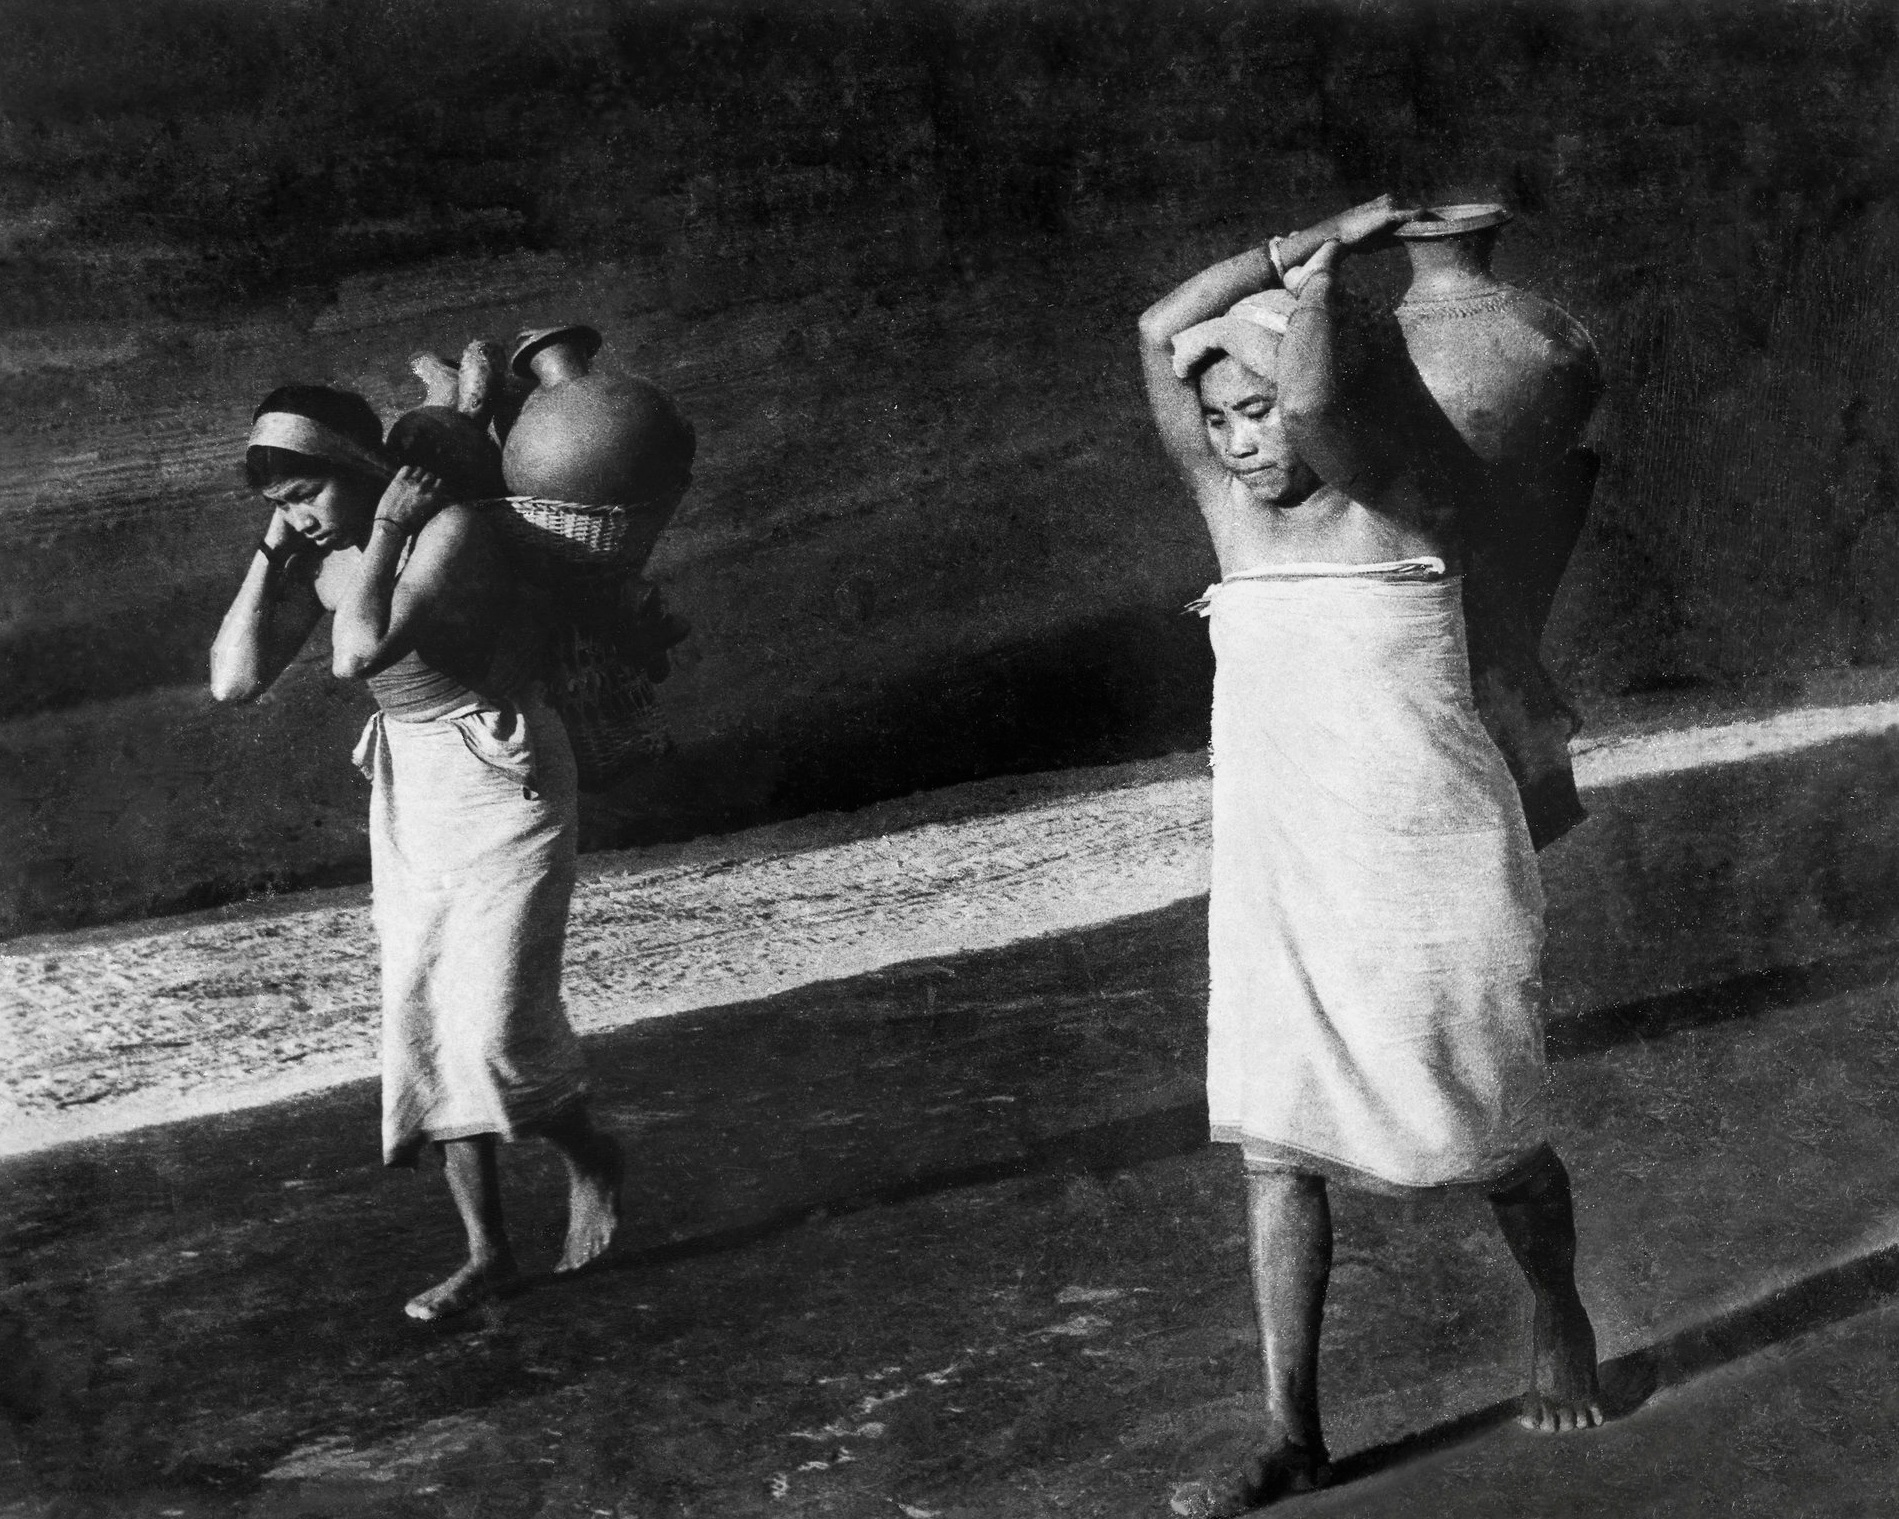 Women from the Deb Barma tribe wearing simple white  pasras  (wrapped lower garment) carrying water back in clay pots to their village near Teliamura.  c.1977